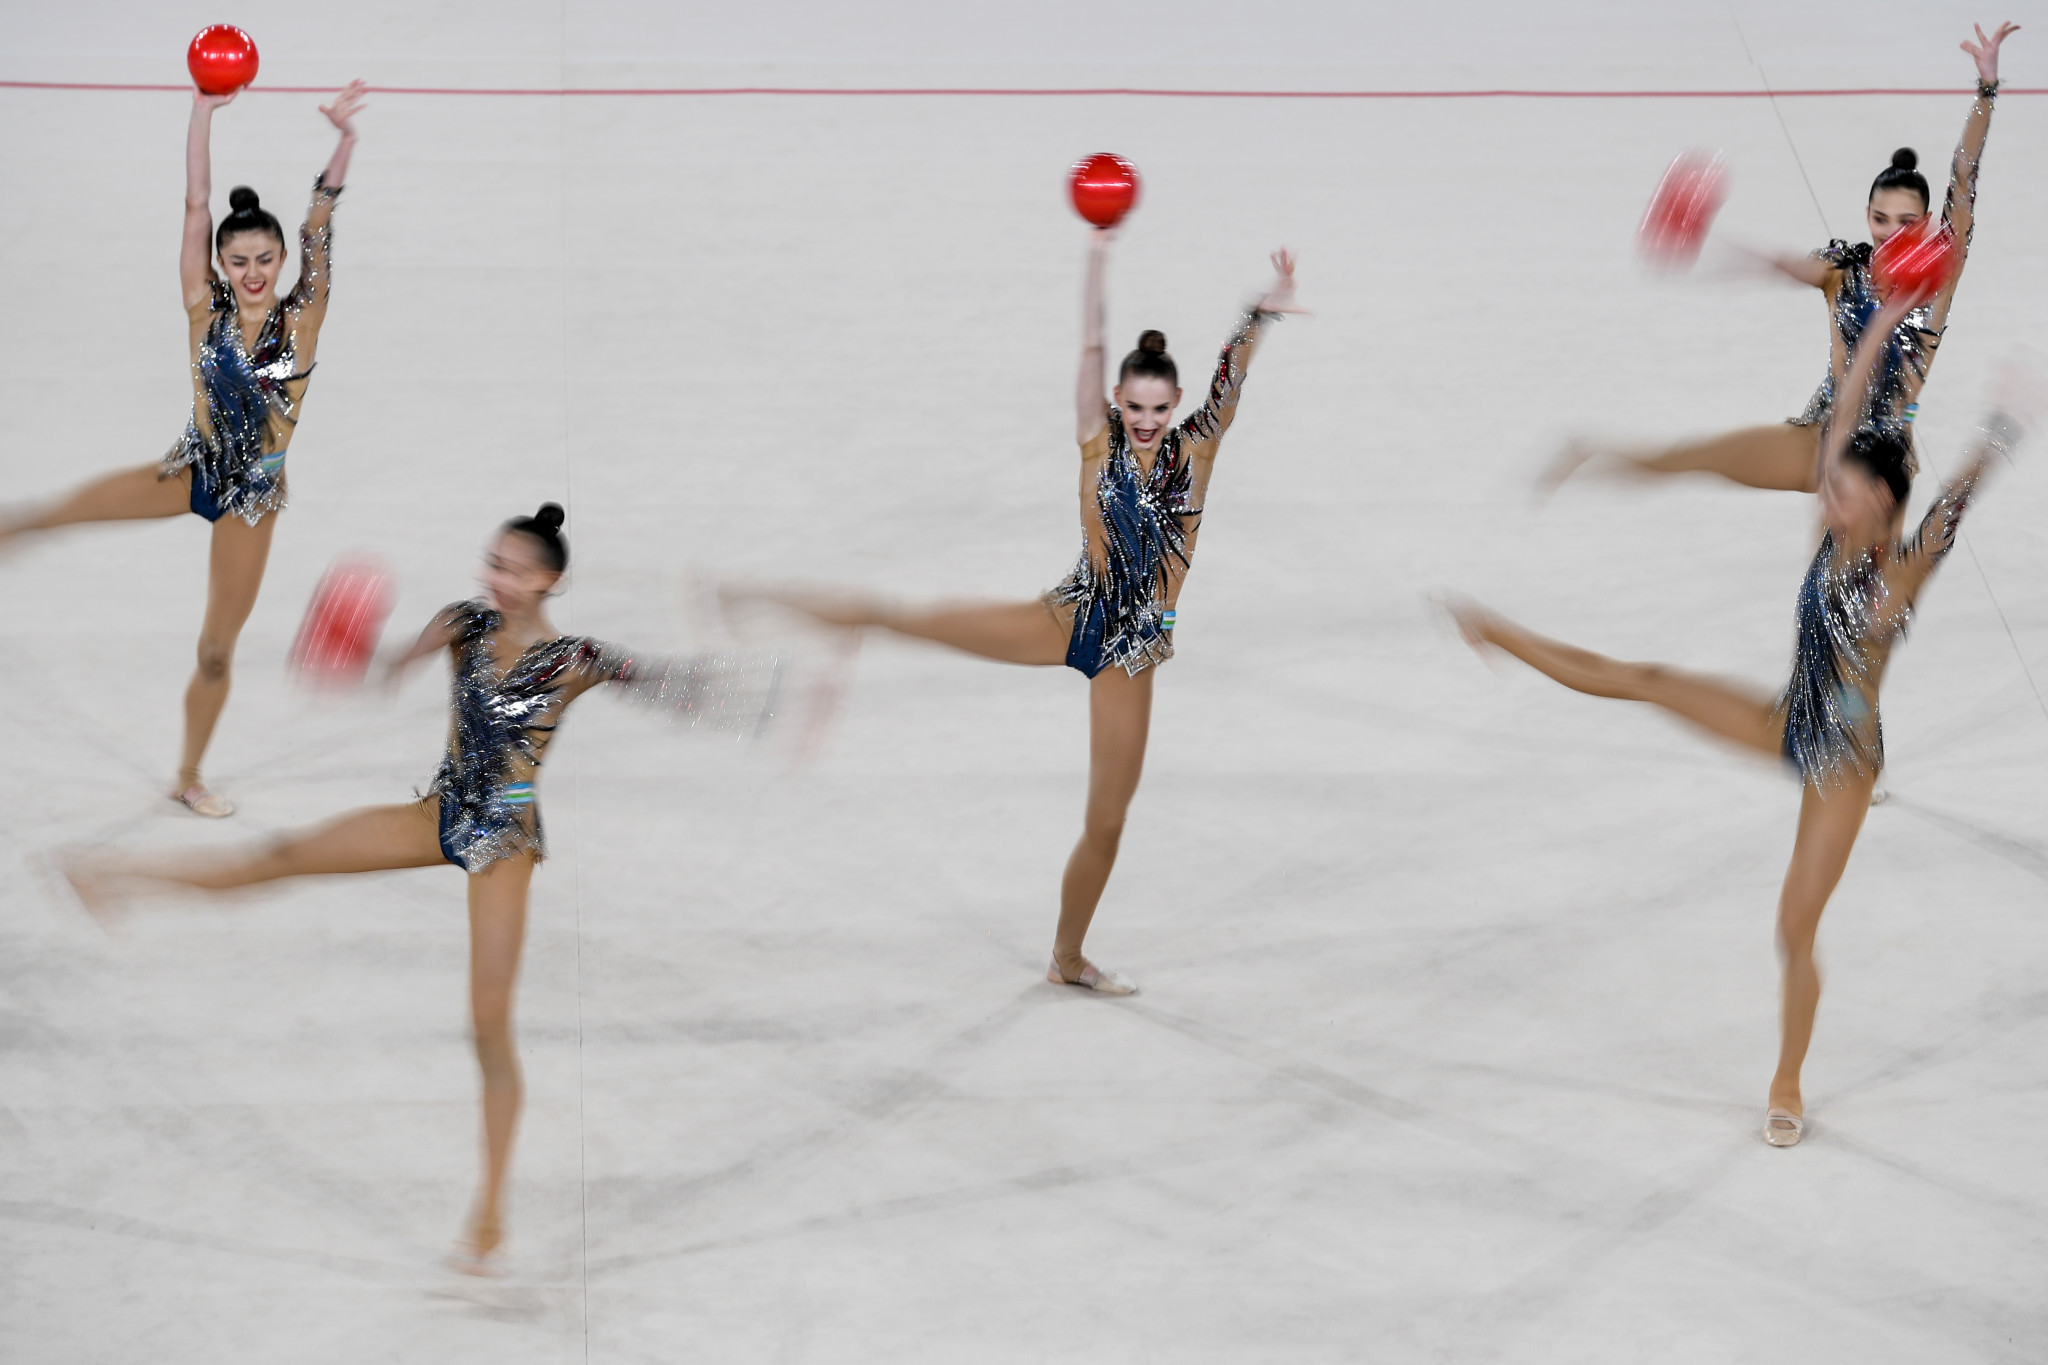 Uzbekistan will be looking for plenty of medals at the 2021 Asian Rhythmic Gymnastics Championships ©Getty Images